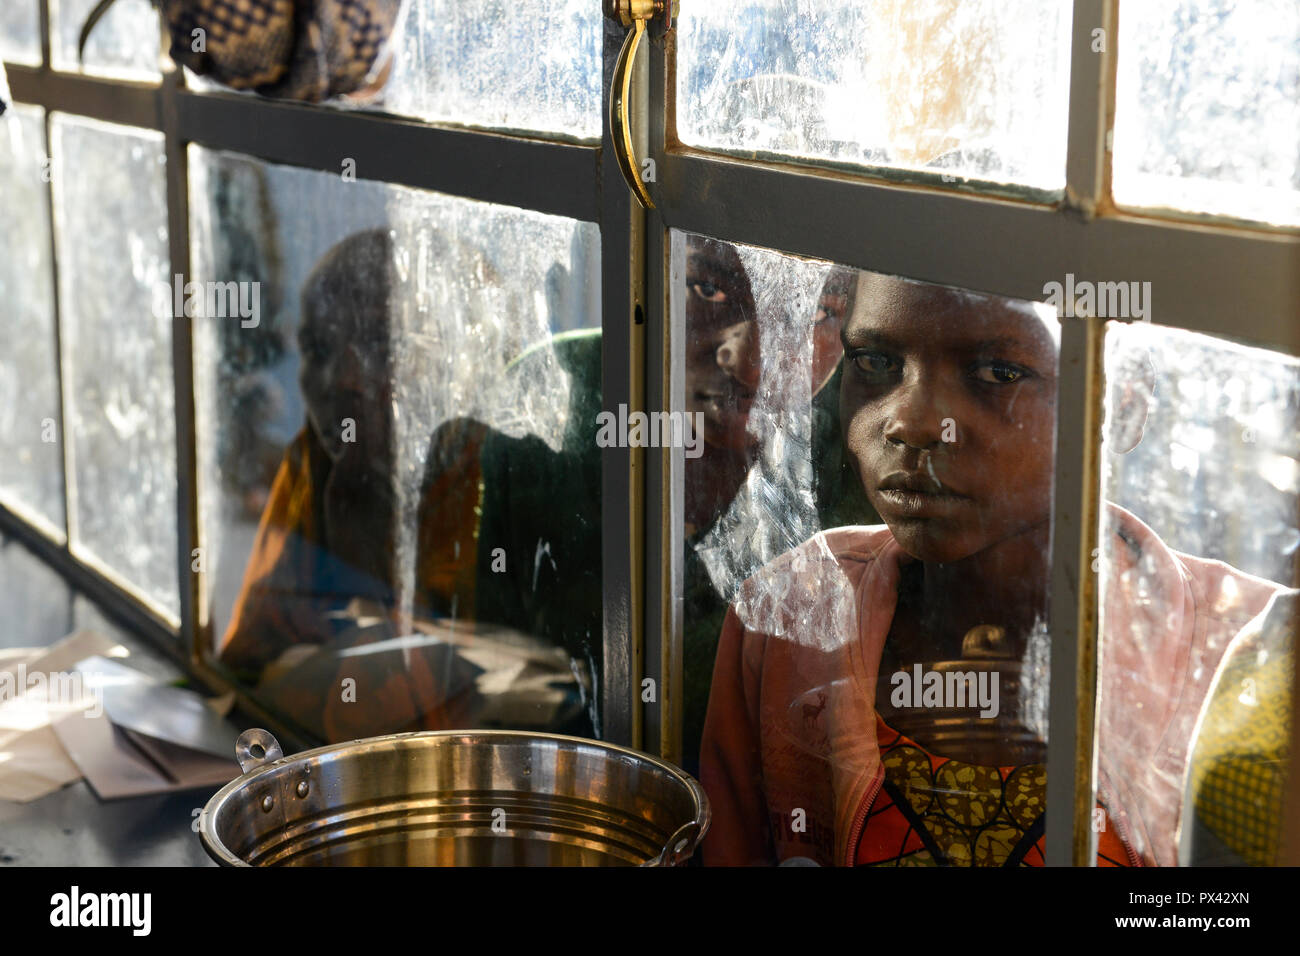 TANZANIA Mara, Tarime, village Masanga, region of the Kuria tribe who practise FGM Female Genital Mutilation, temporary rescue camp of the Diocese Musoma for girls which escaped from their villages to prevent FGM - Stock Image